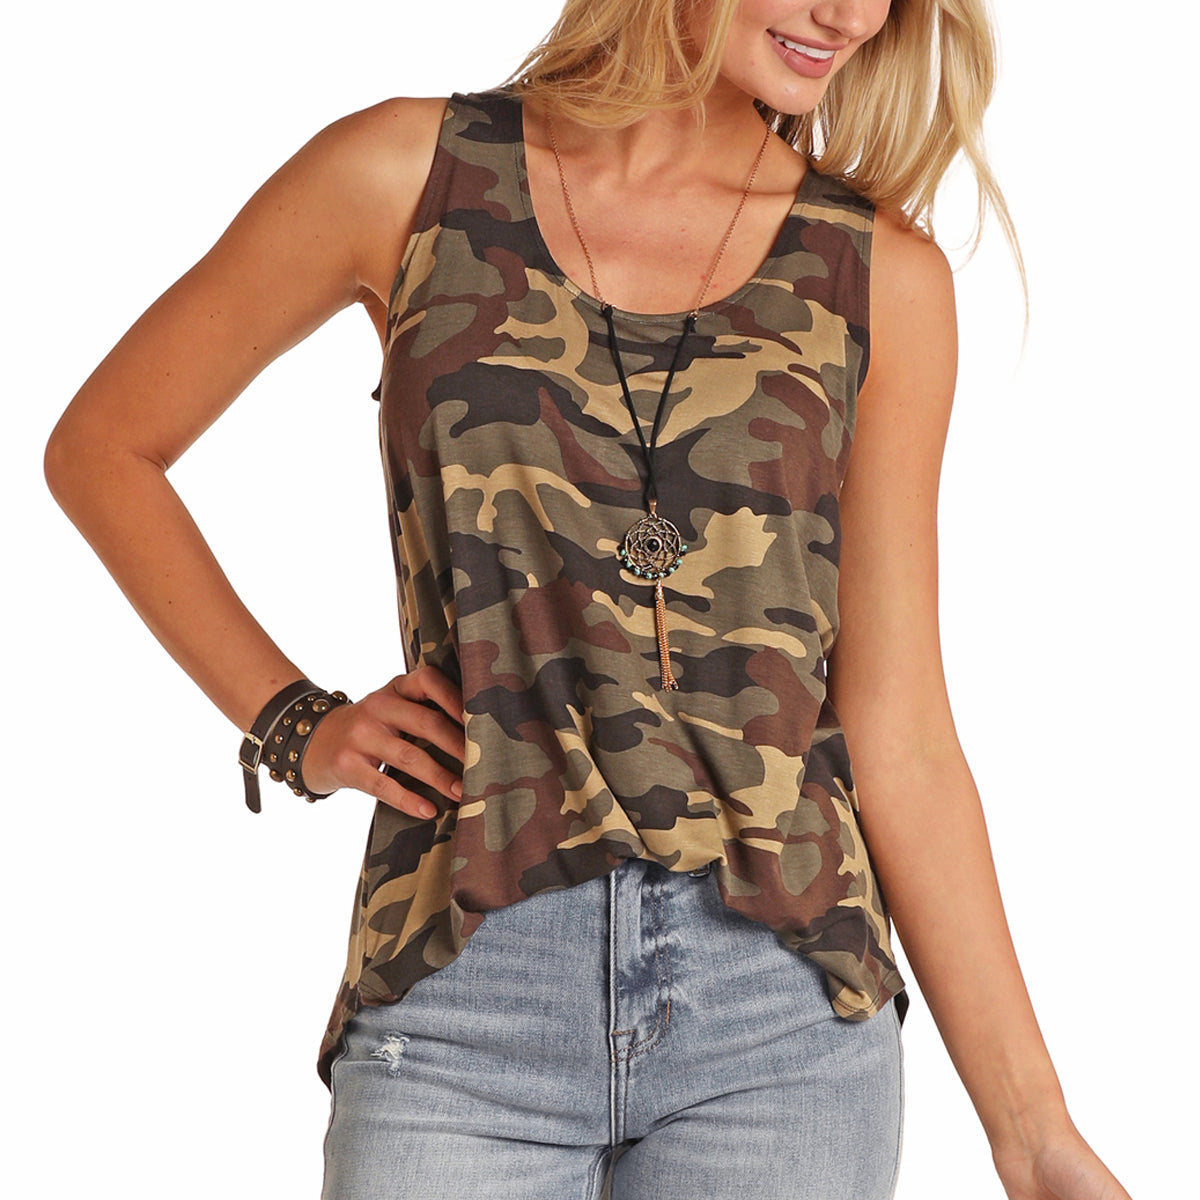 Panhandle Women's Camo Knit Tank - Olive